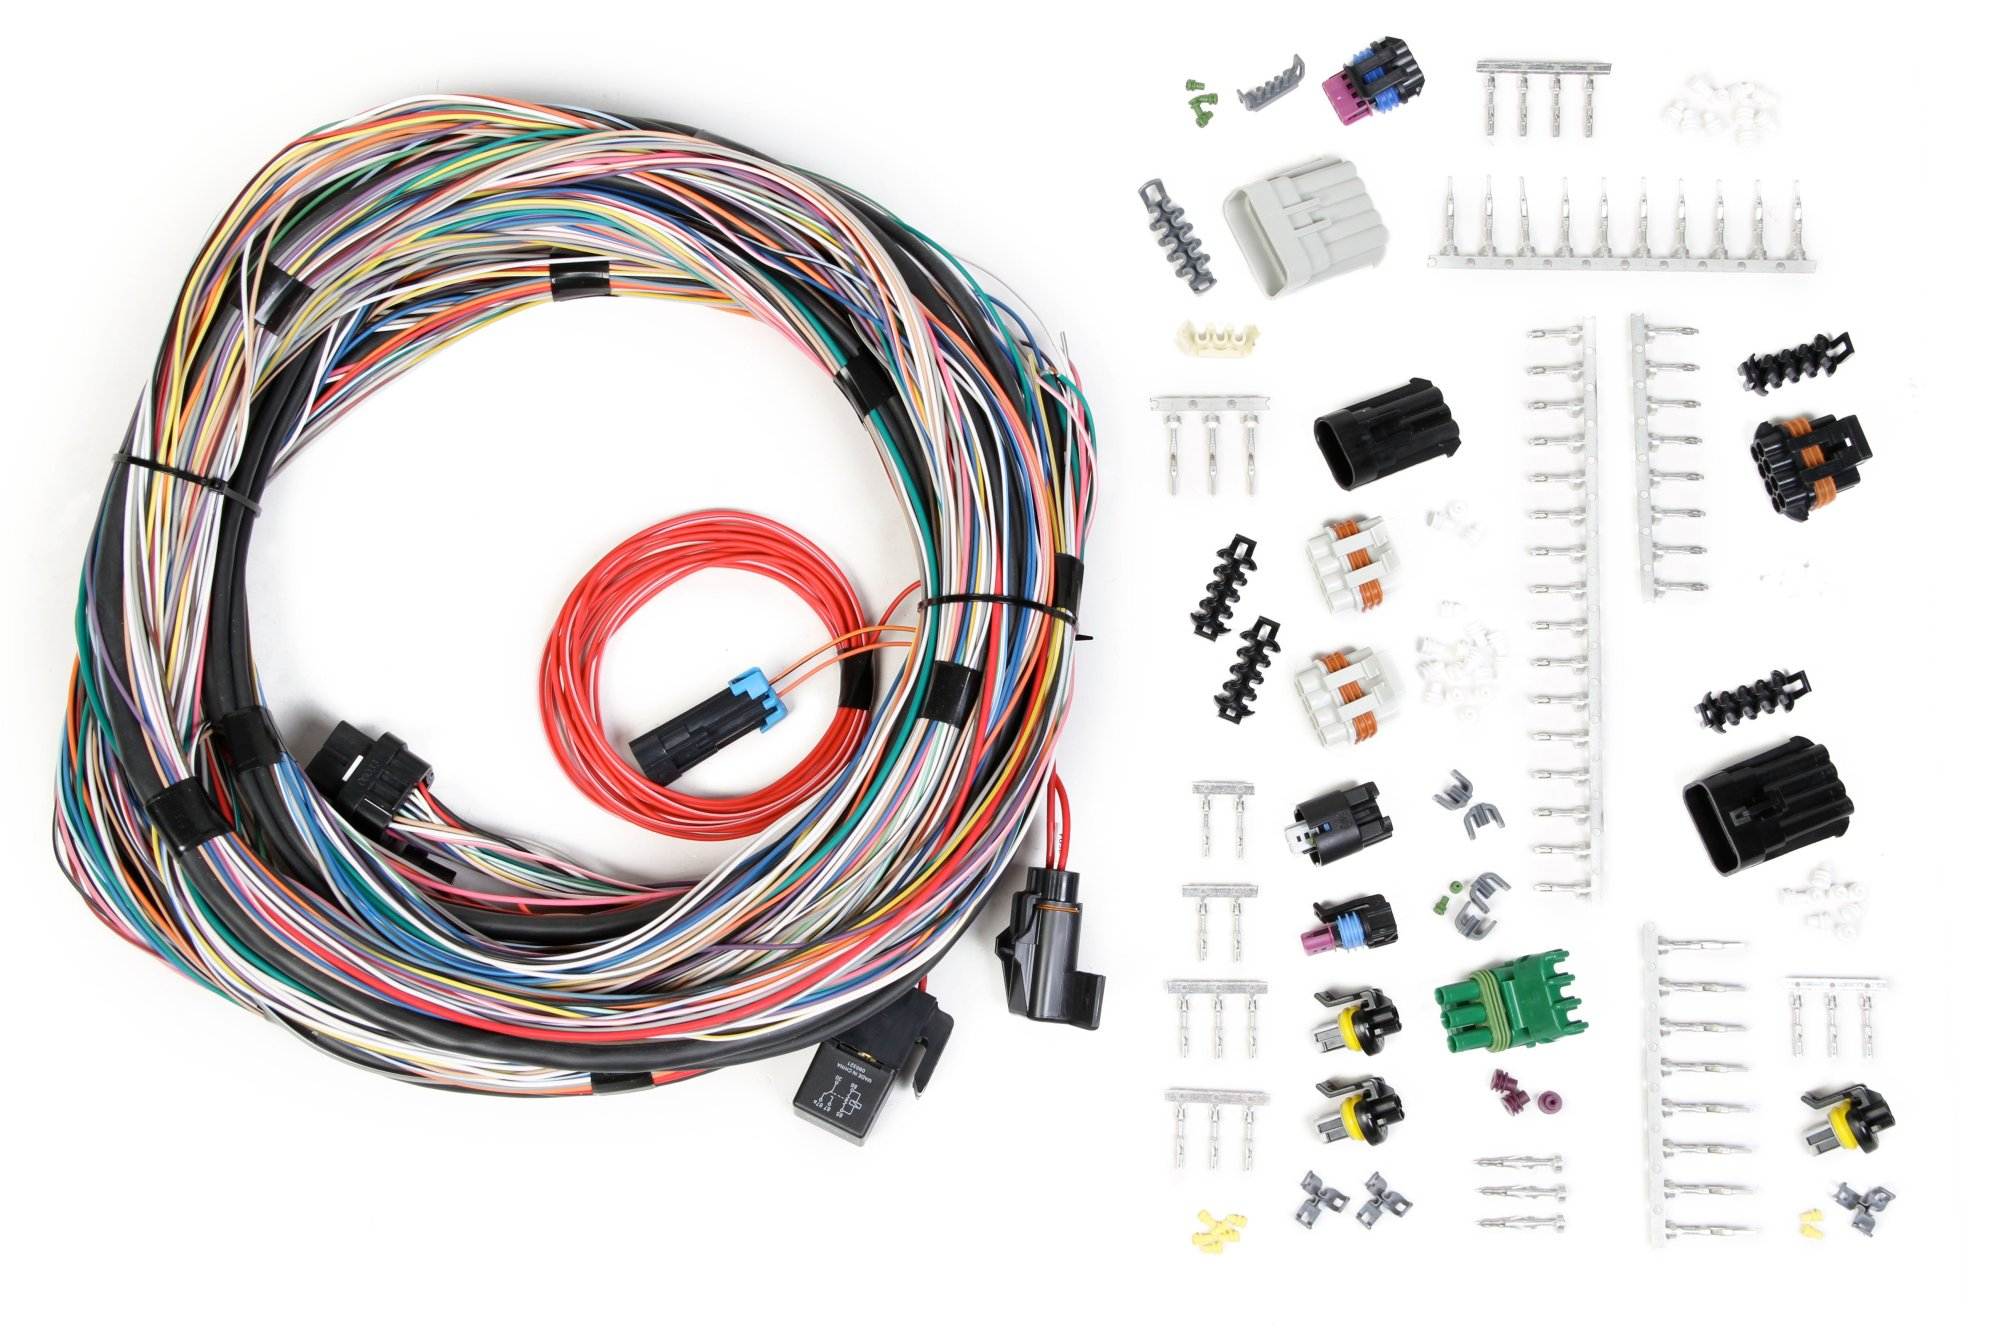 hight resolution of holley efi 558 105 unterminated universal main harness holley efi wiring harness diagram holley wiring harness